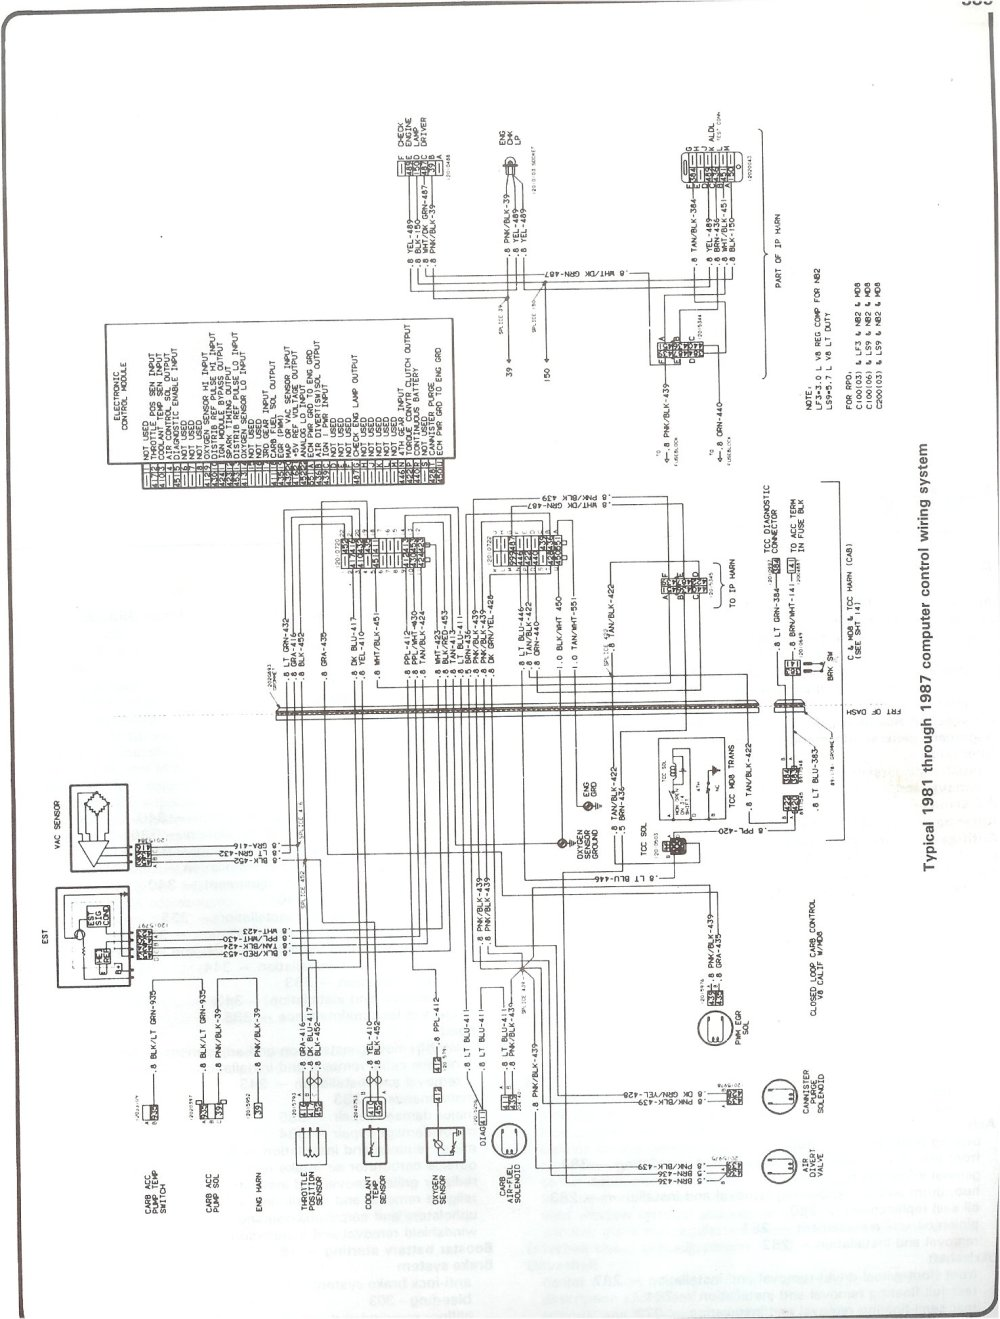 medium resolution of 1979 chevy c30 truck wiring diagram wiring diagram1979 chevy c30 truck wiring diagram